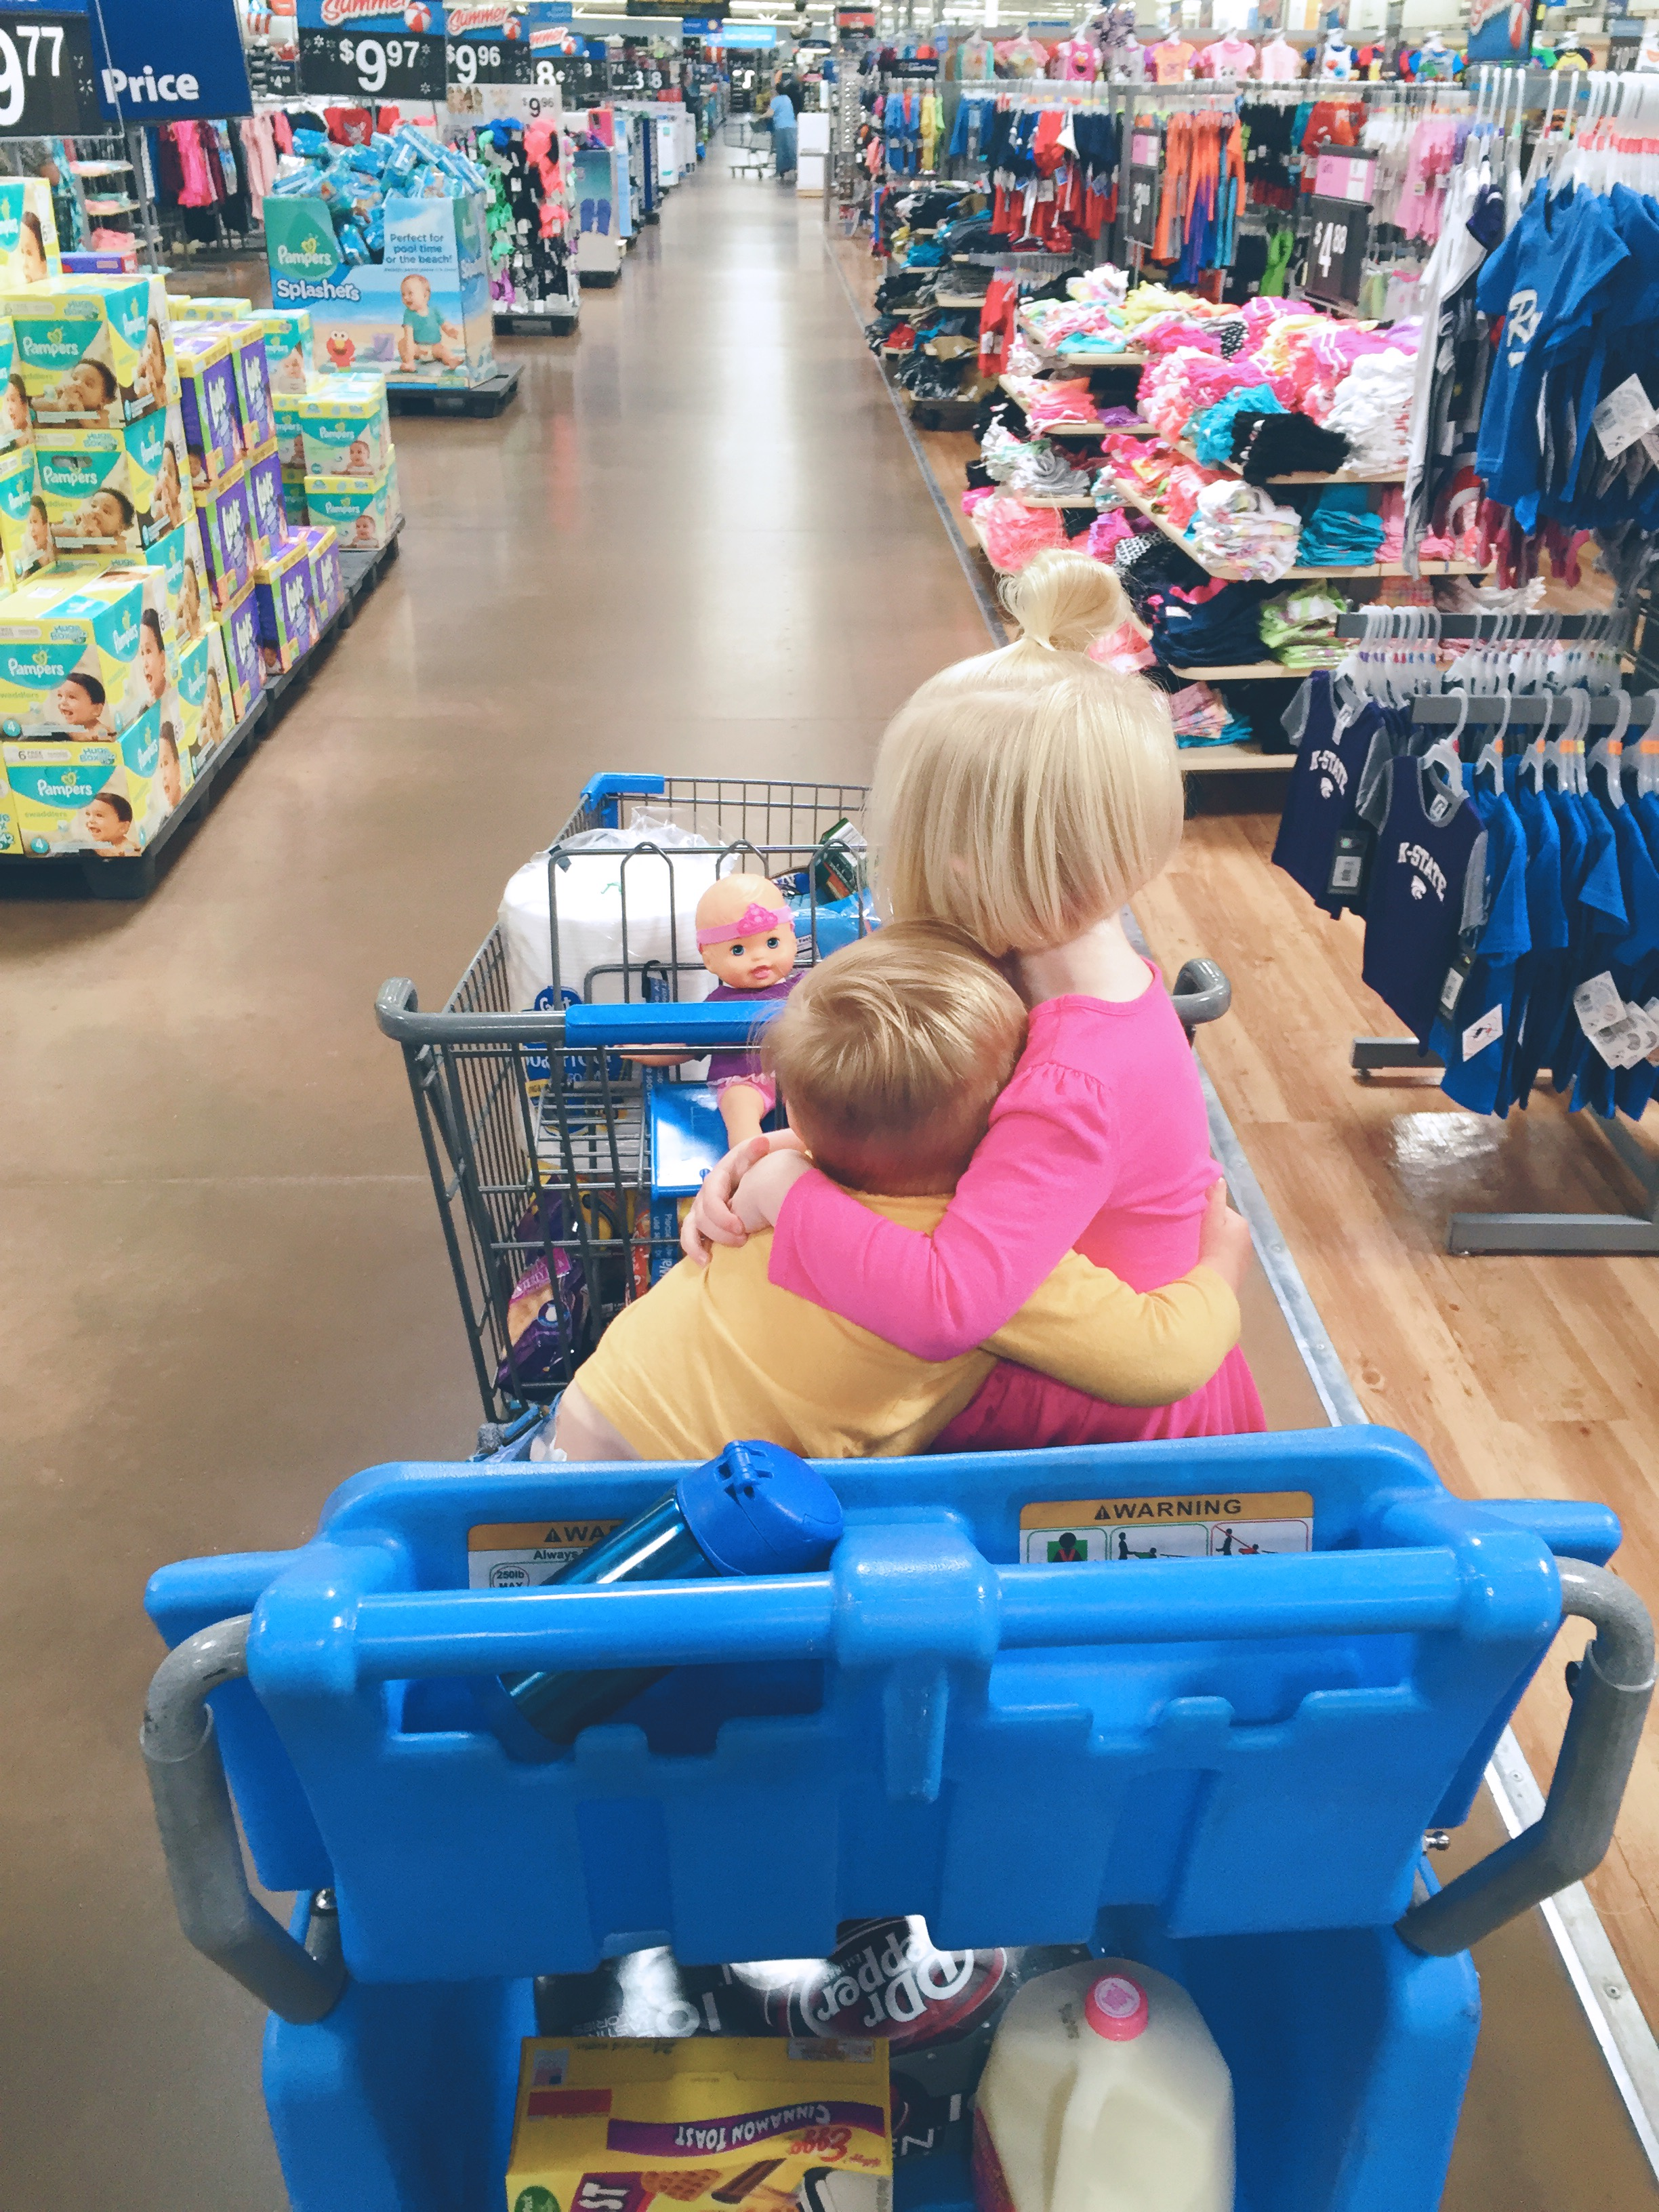 Shopping cart hugs